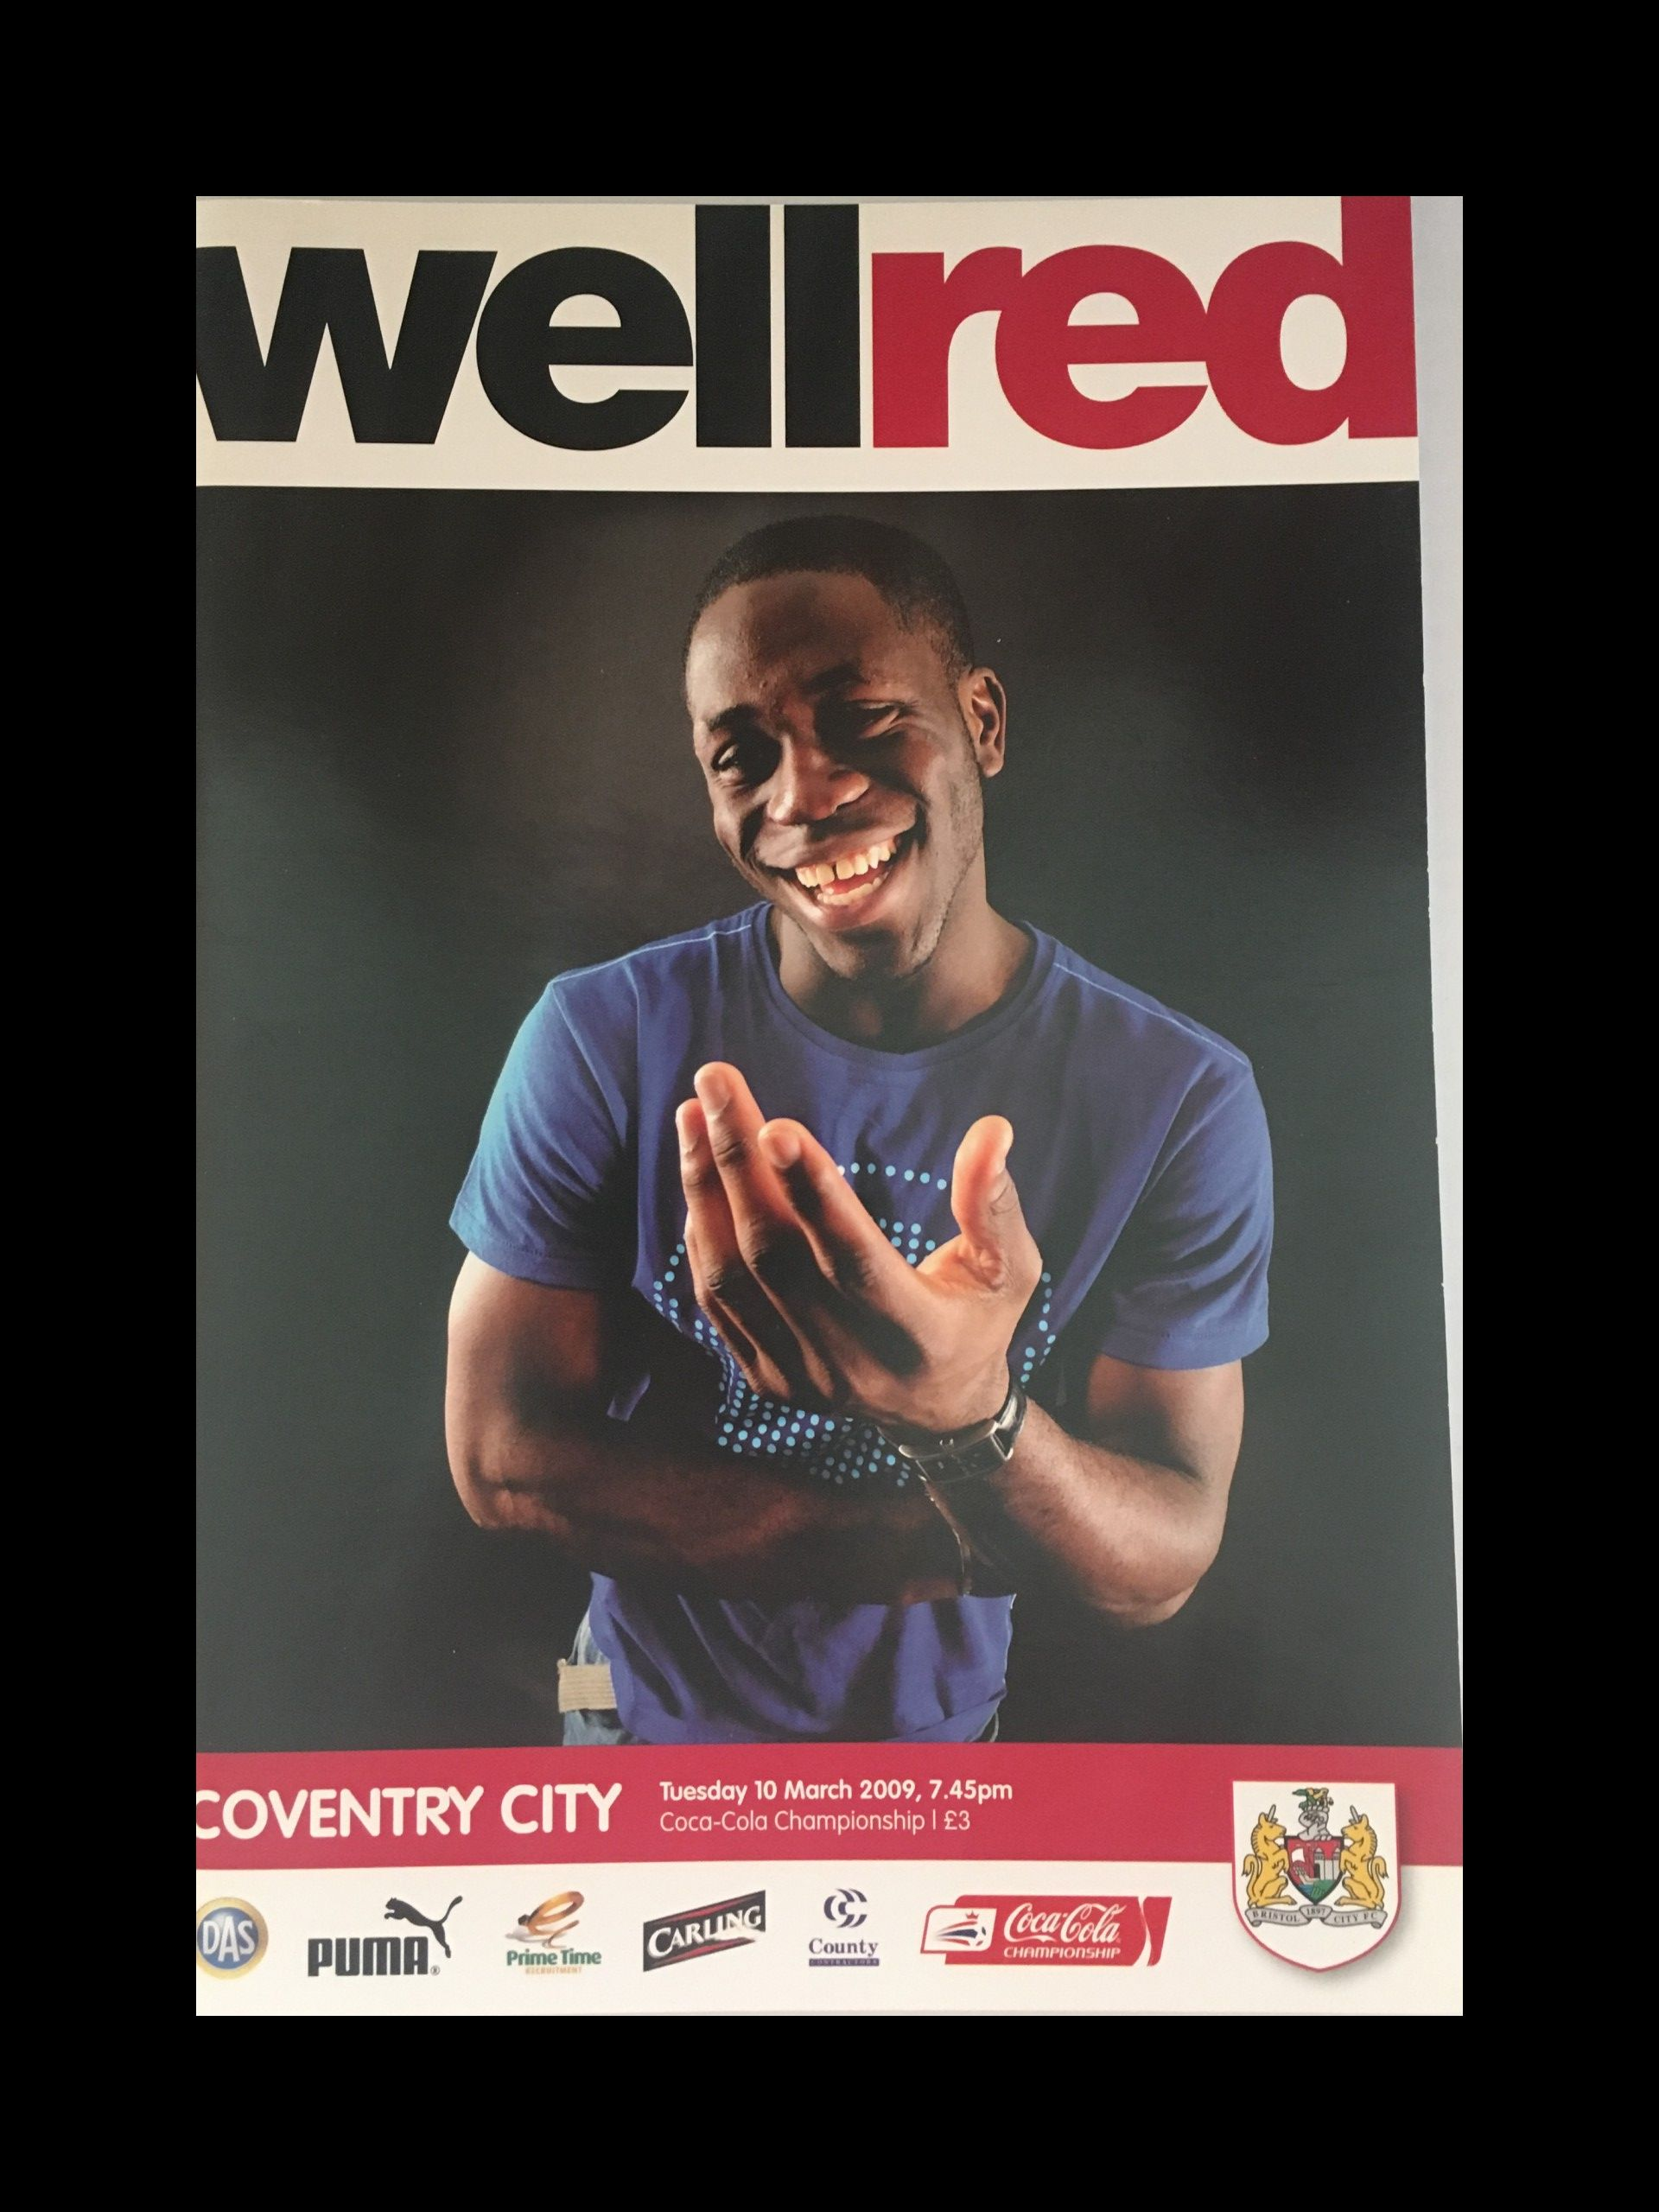 Bristol City v Coventry City 10-03-2009 Programme